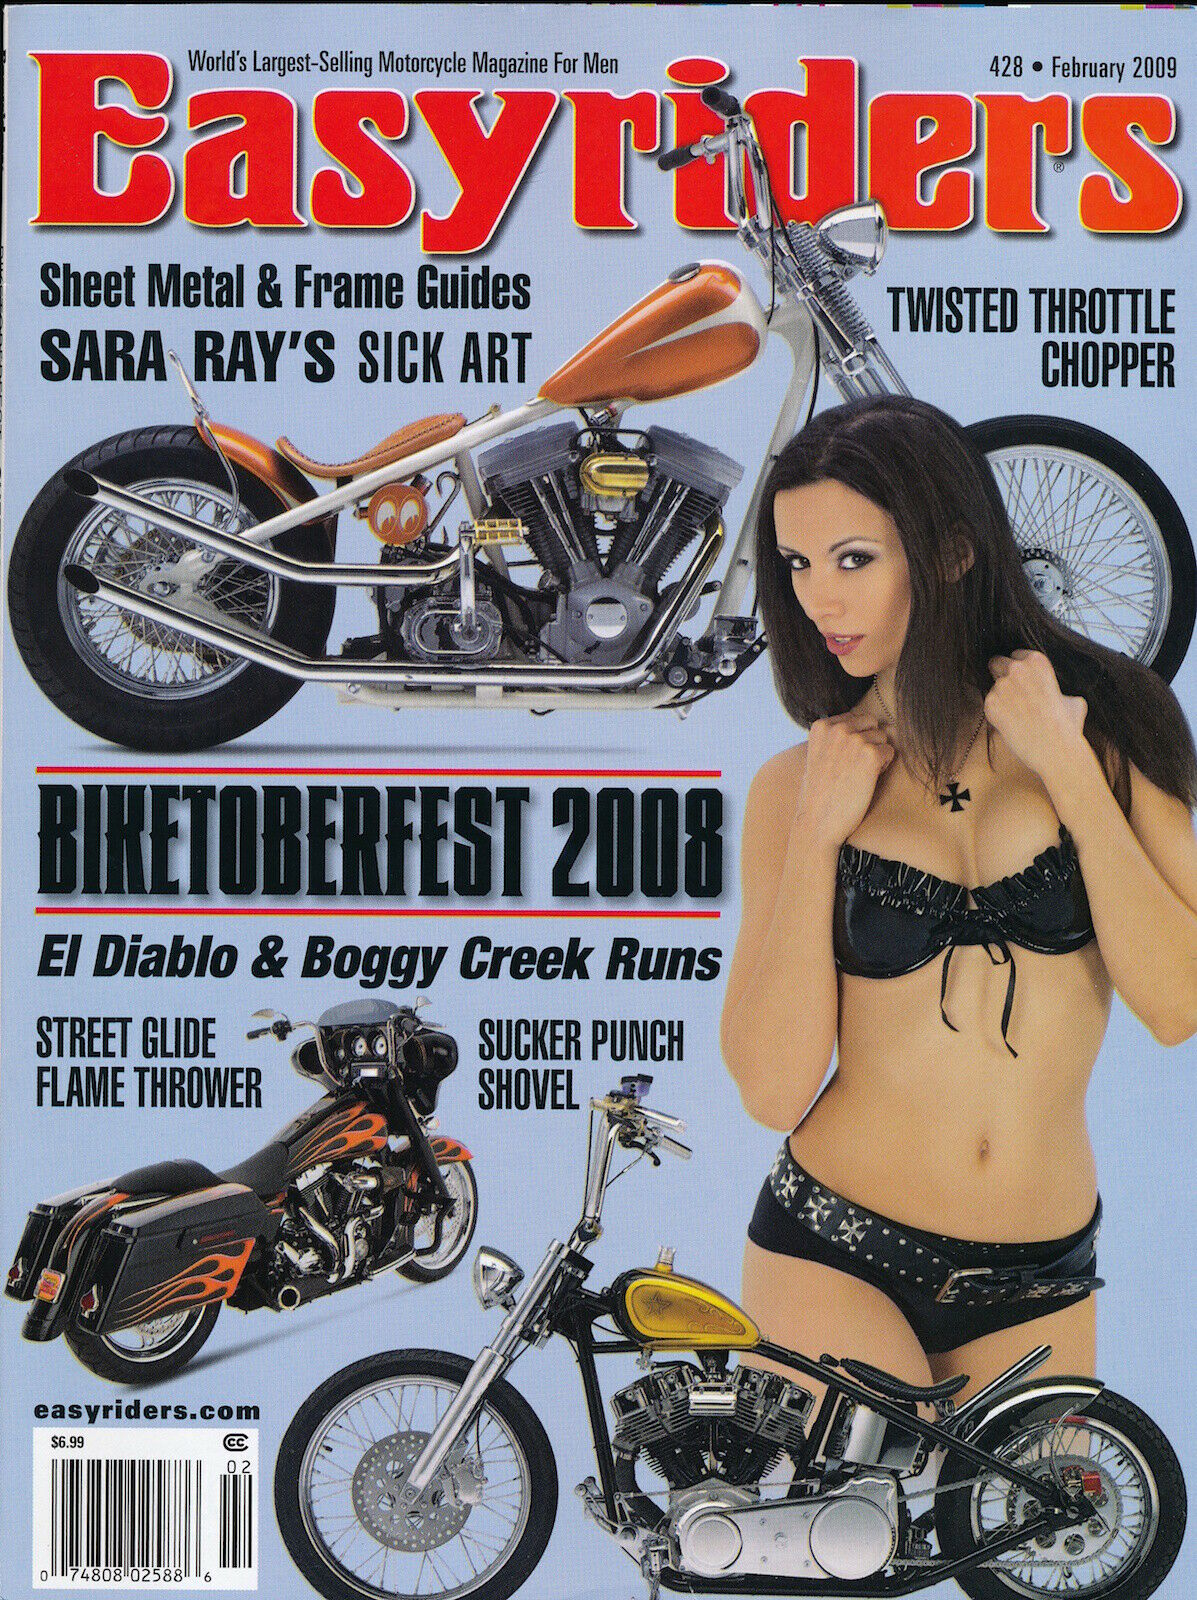 EASYRIDERS February 2009 SARA RAY Biketoberfest BOGGY CREEK Motorcycles 127009 - $2.00